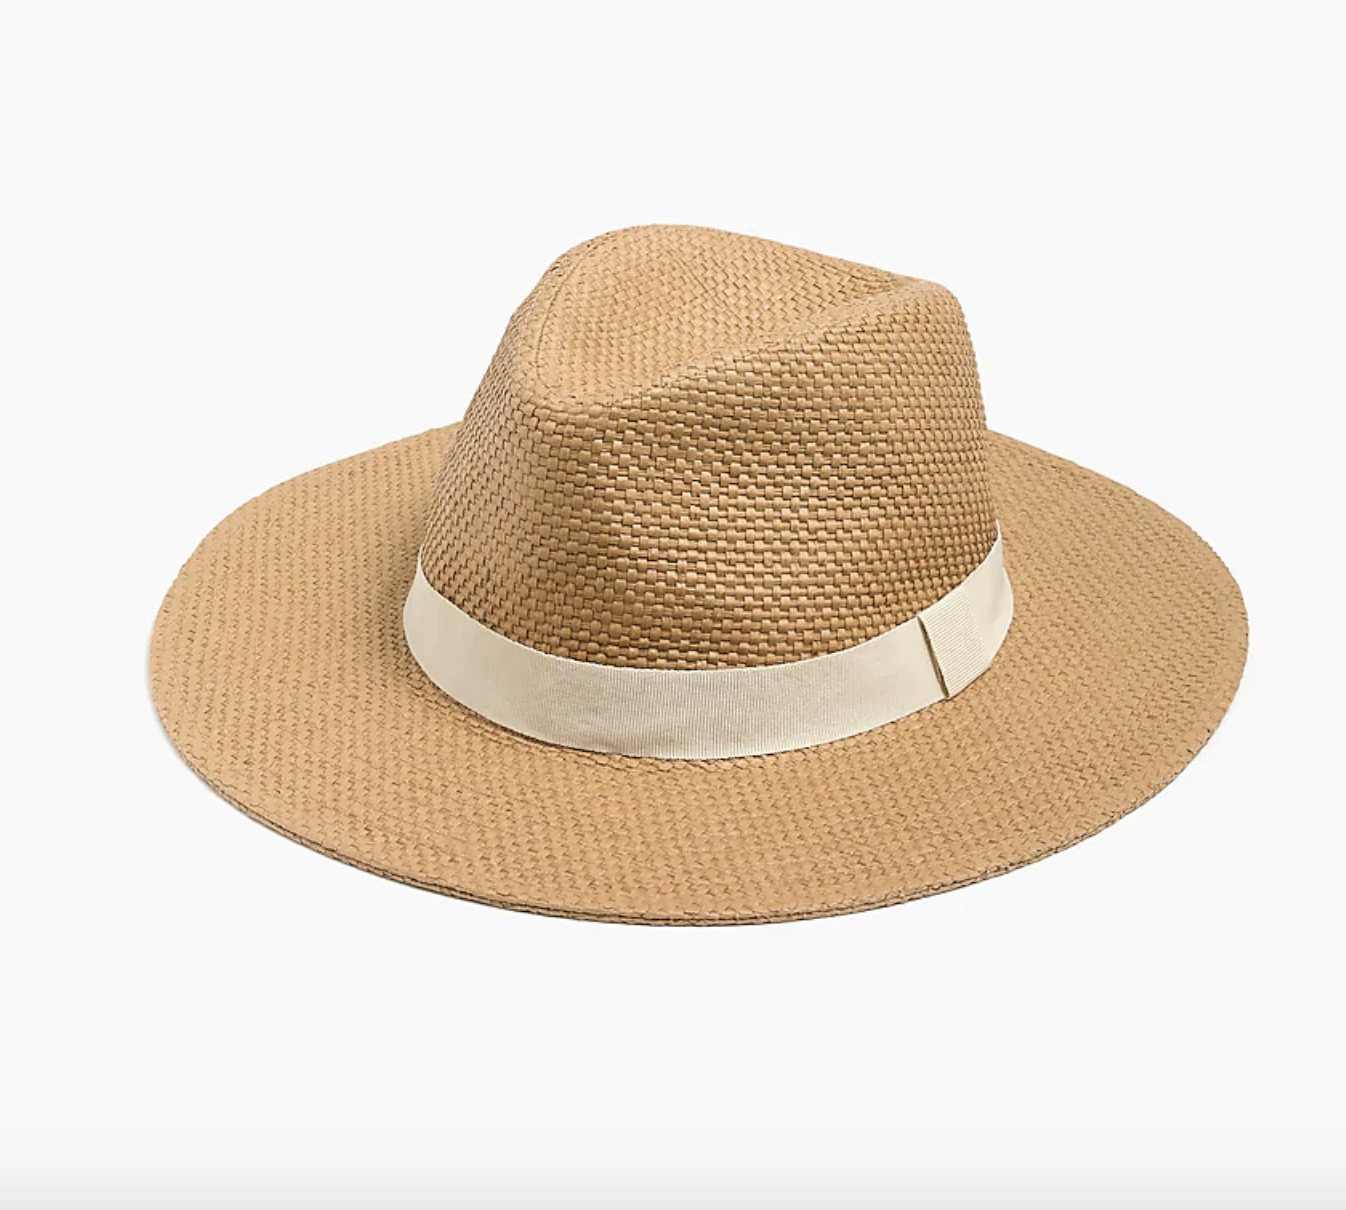 the straw sun hat, which has a light beige colored band